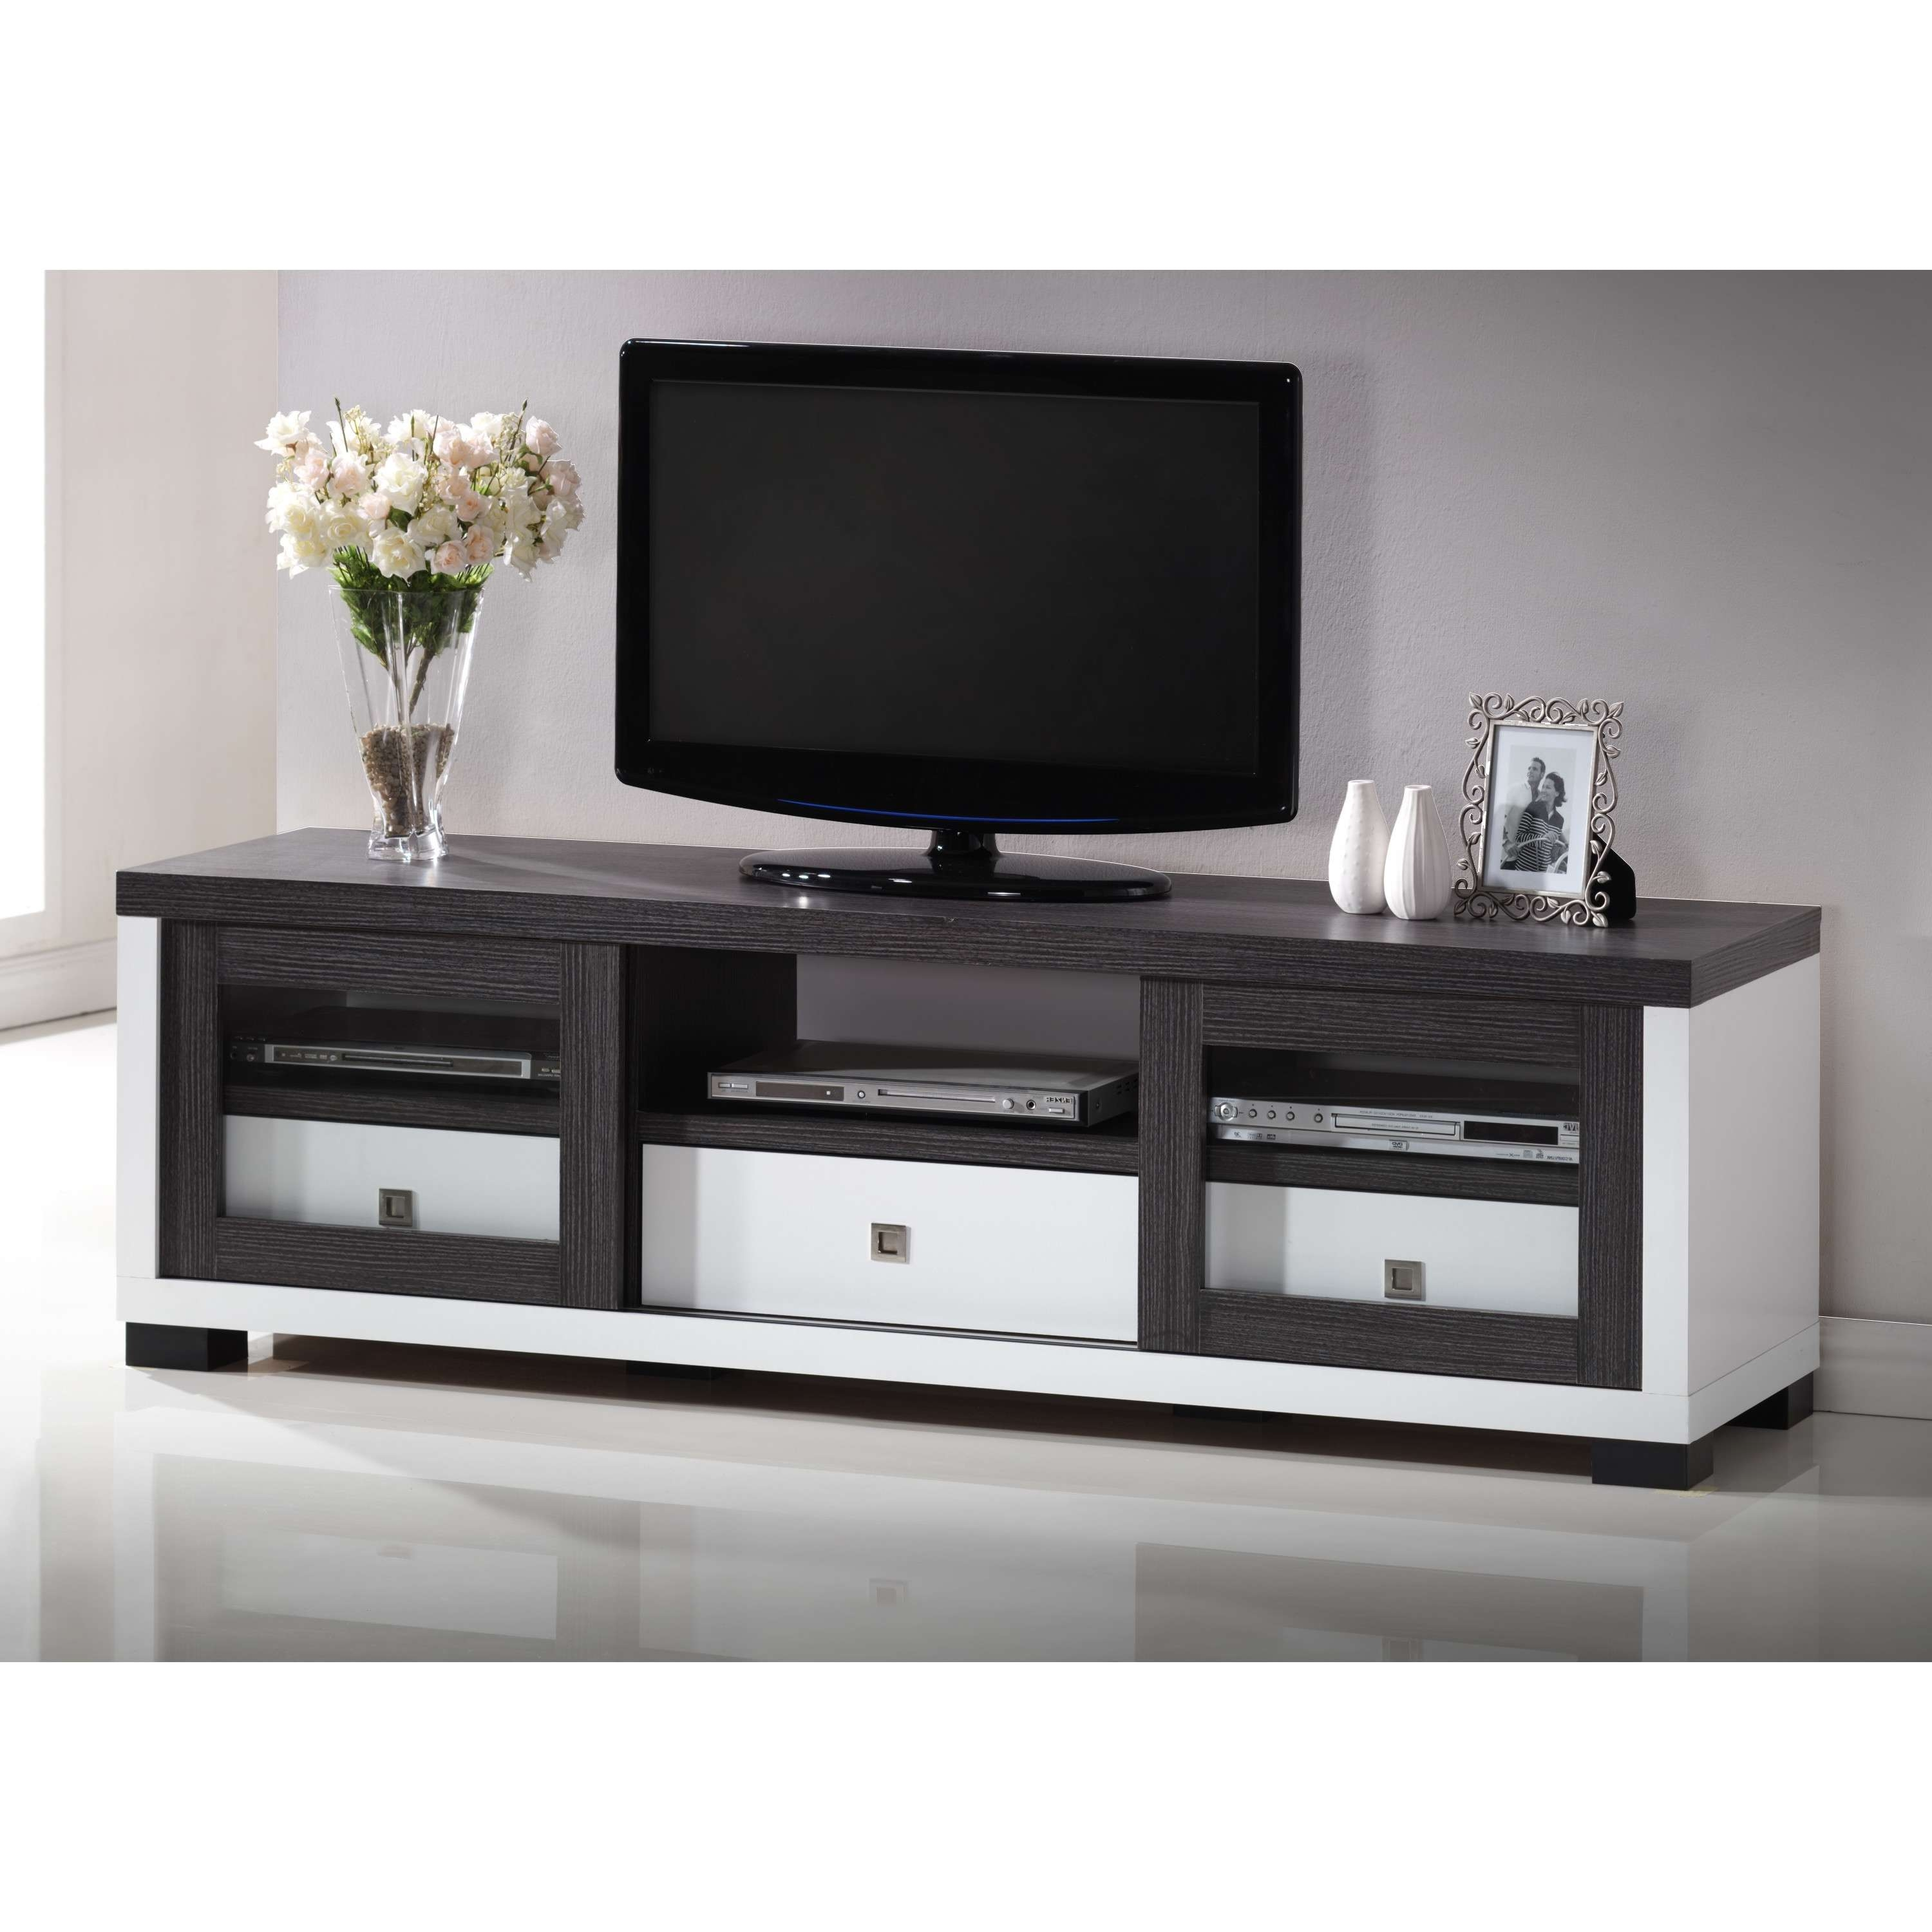 Glass Tv Cabinet With Doors Image Collections – Doors Design Ideas For Tv Cabinets With Glass Doors (View 5 of 20)